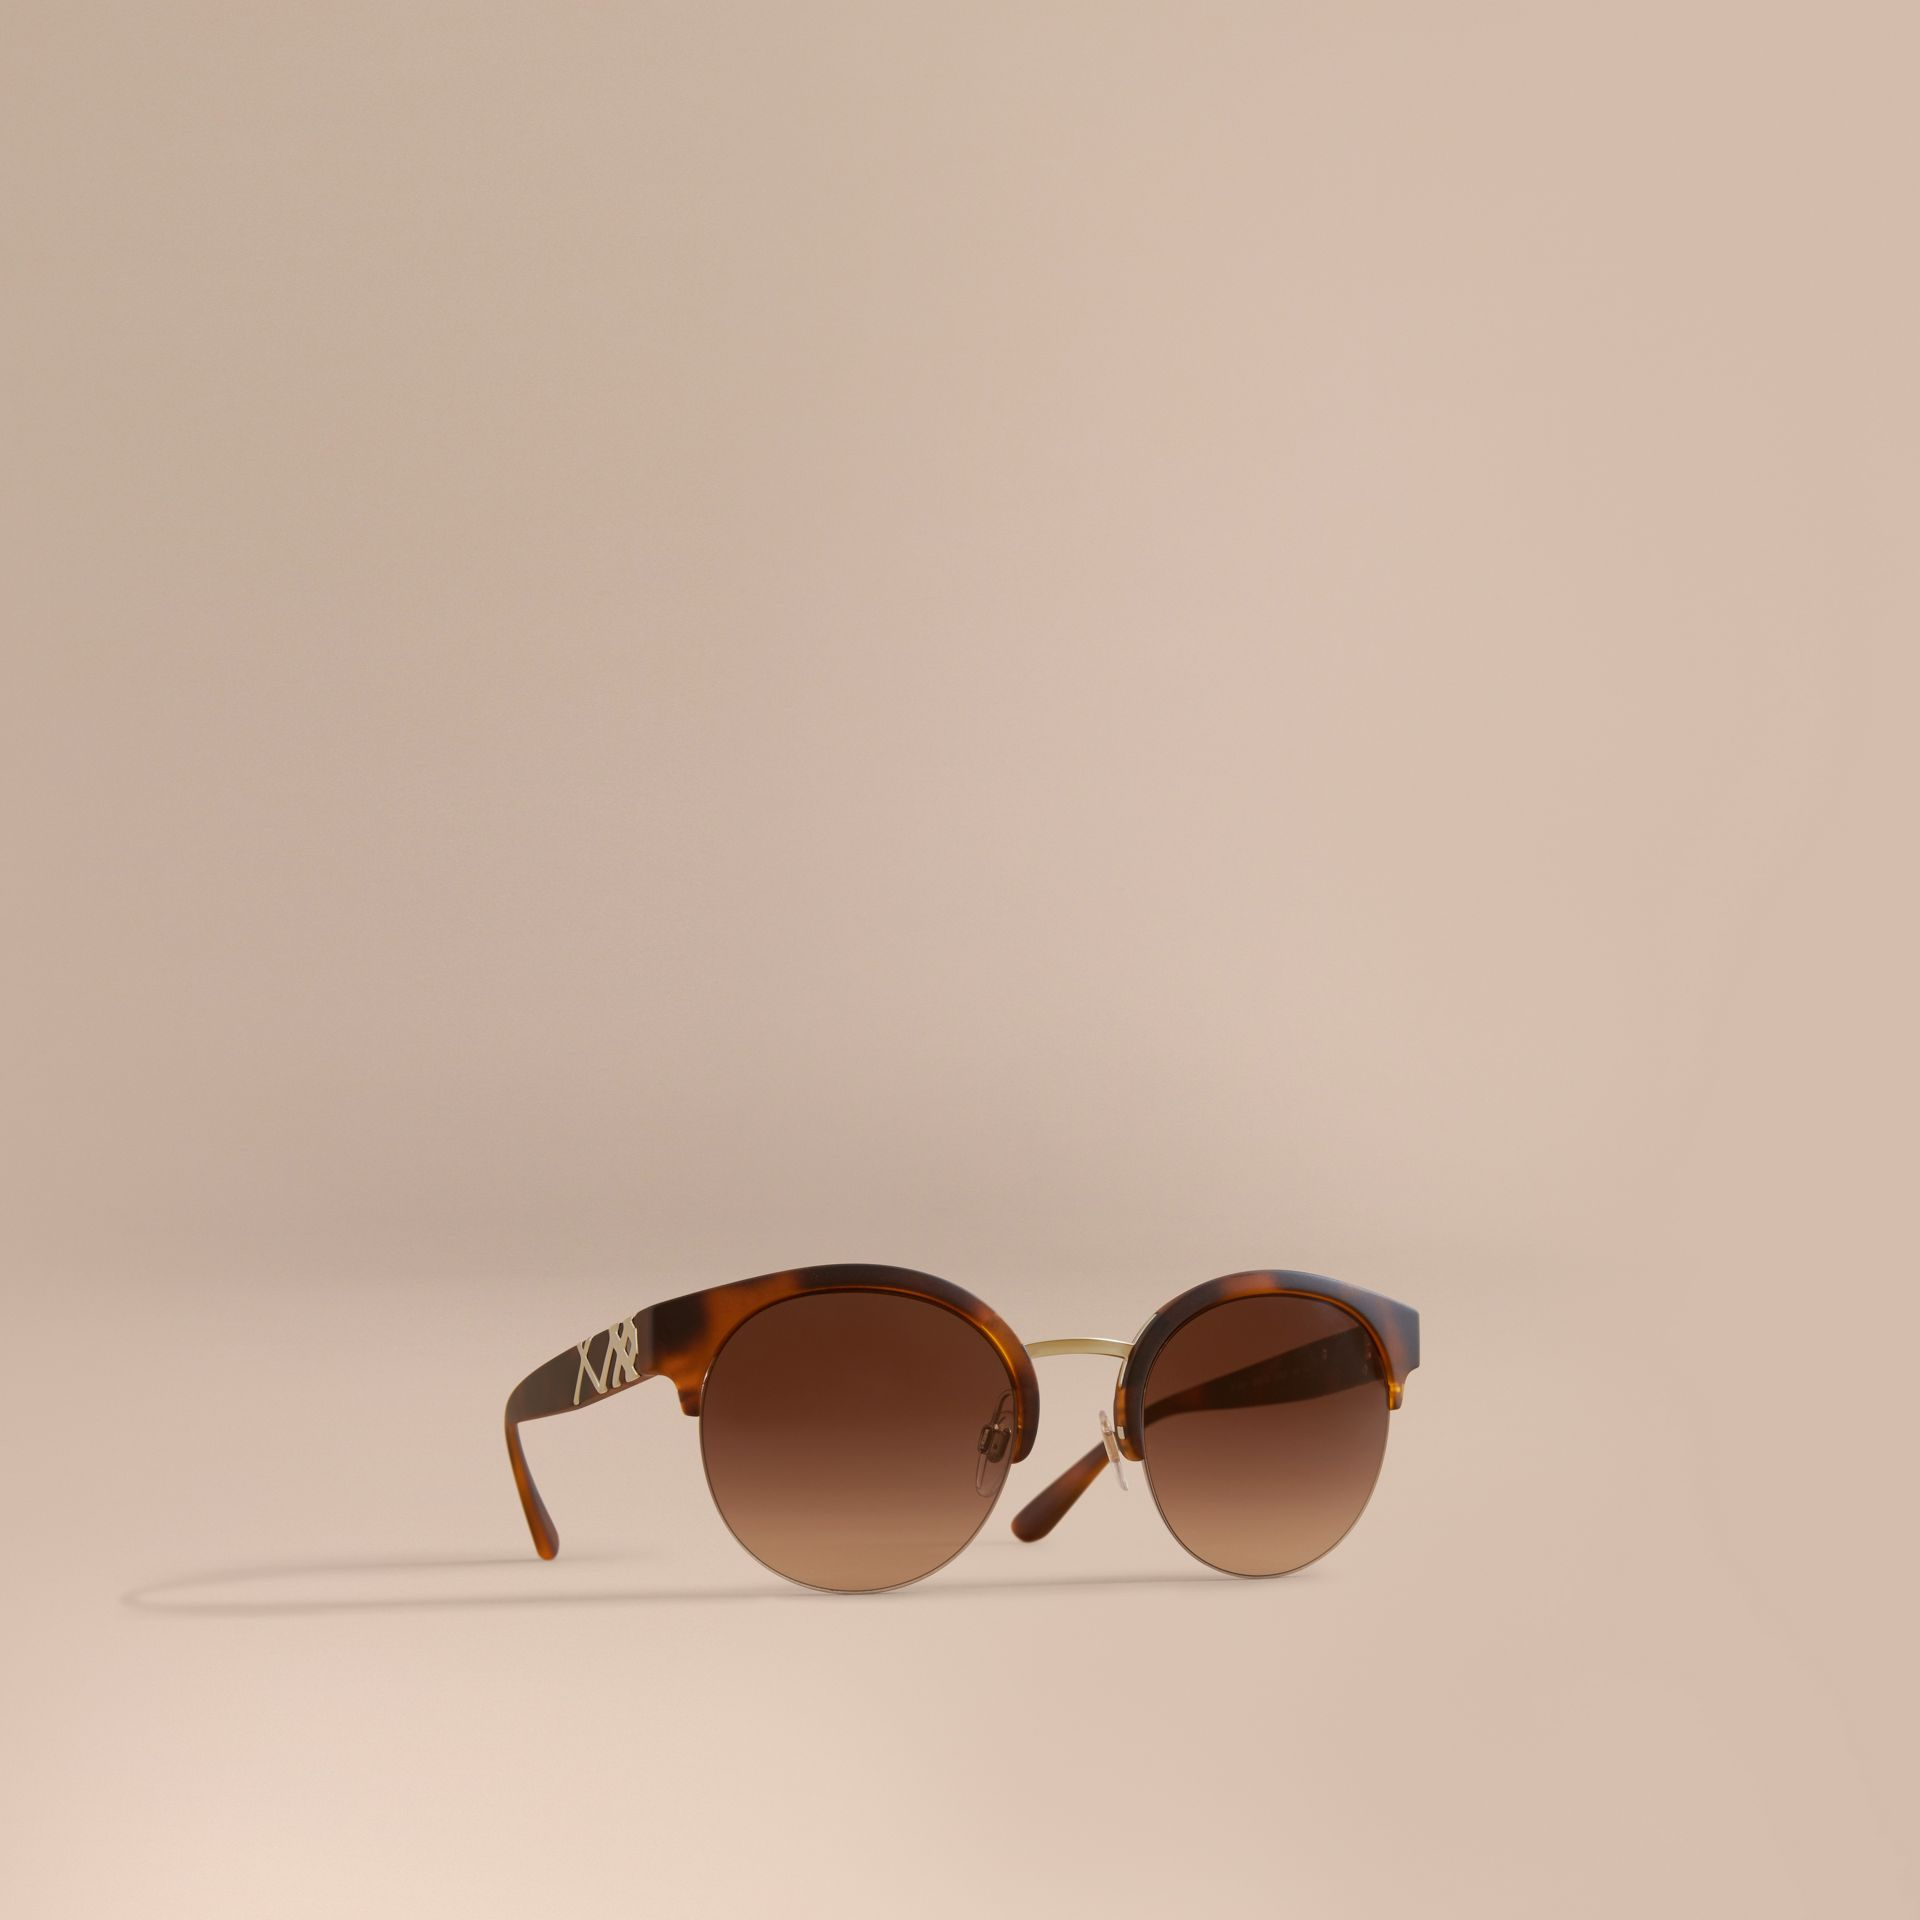 Check Detail Round Half-frame Sunglasses in Brown - Women | Burberry - gallery image 1